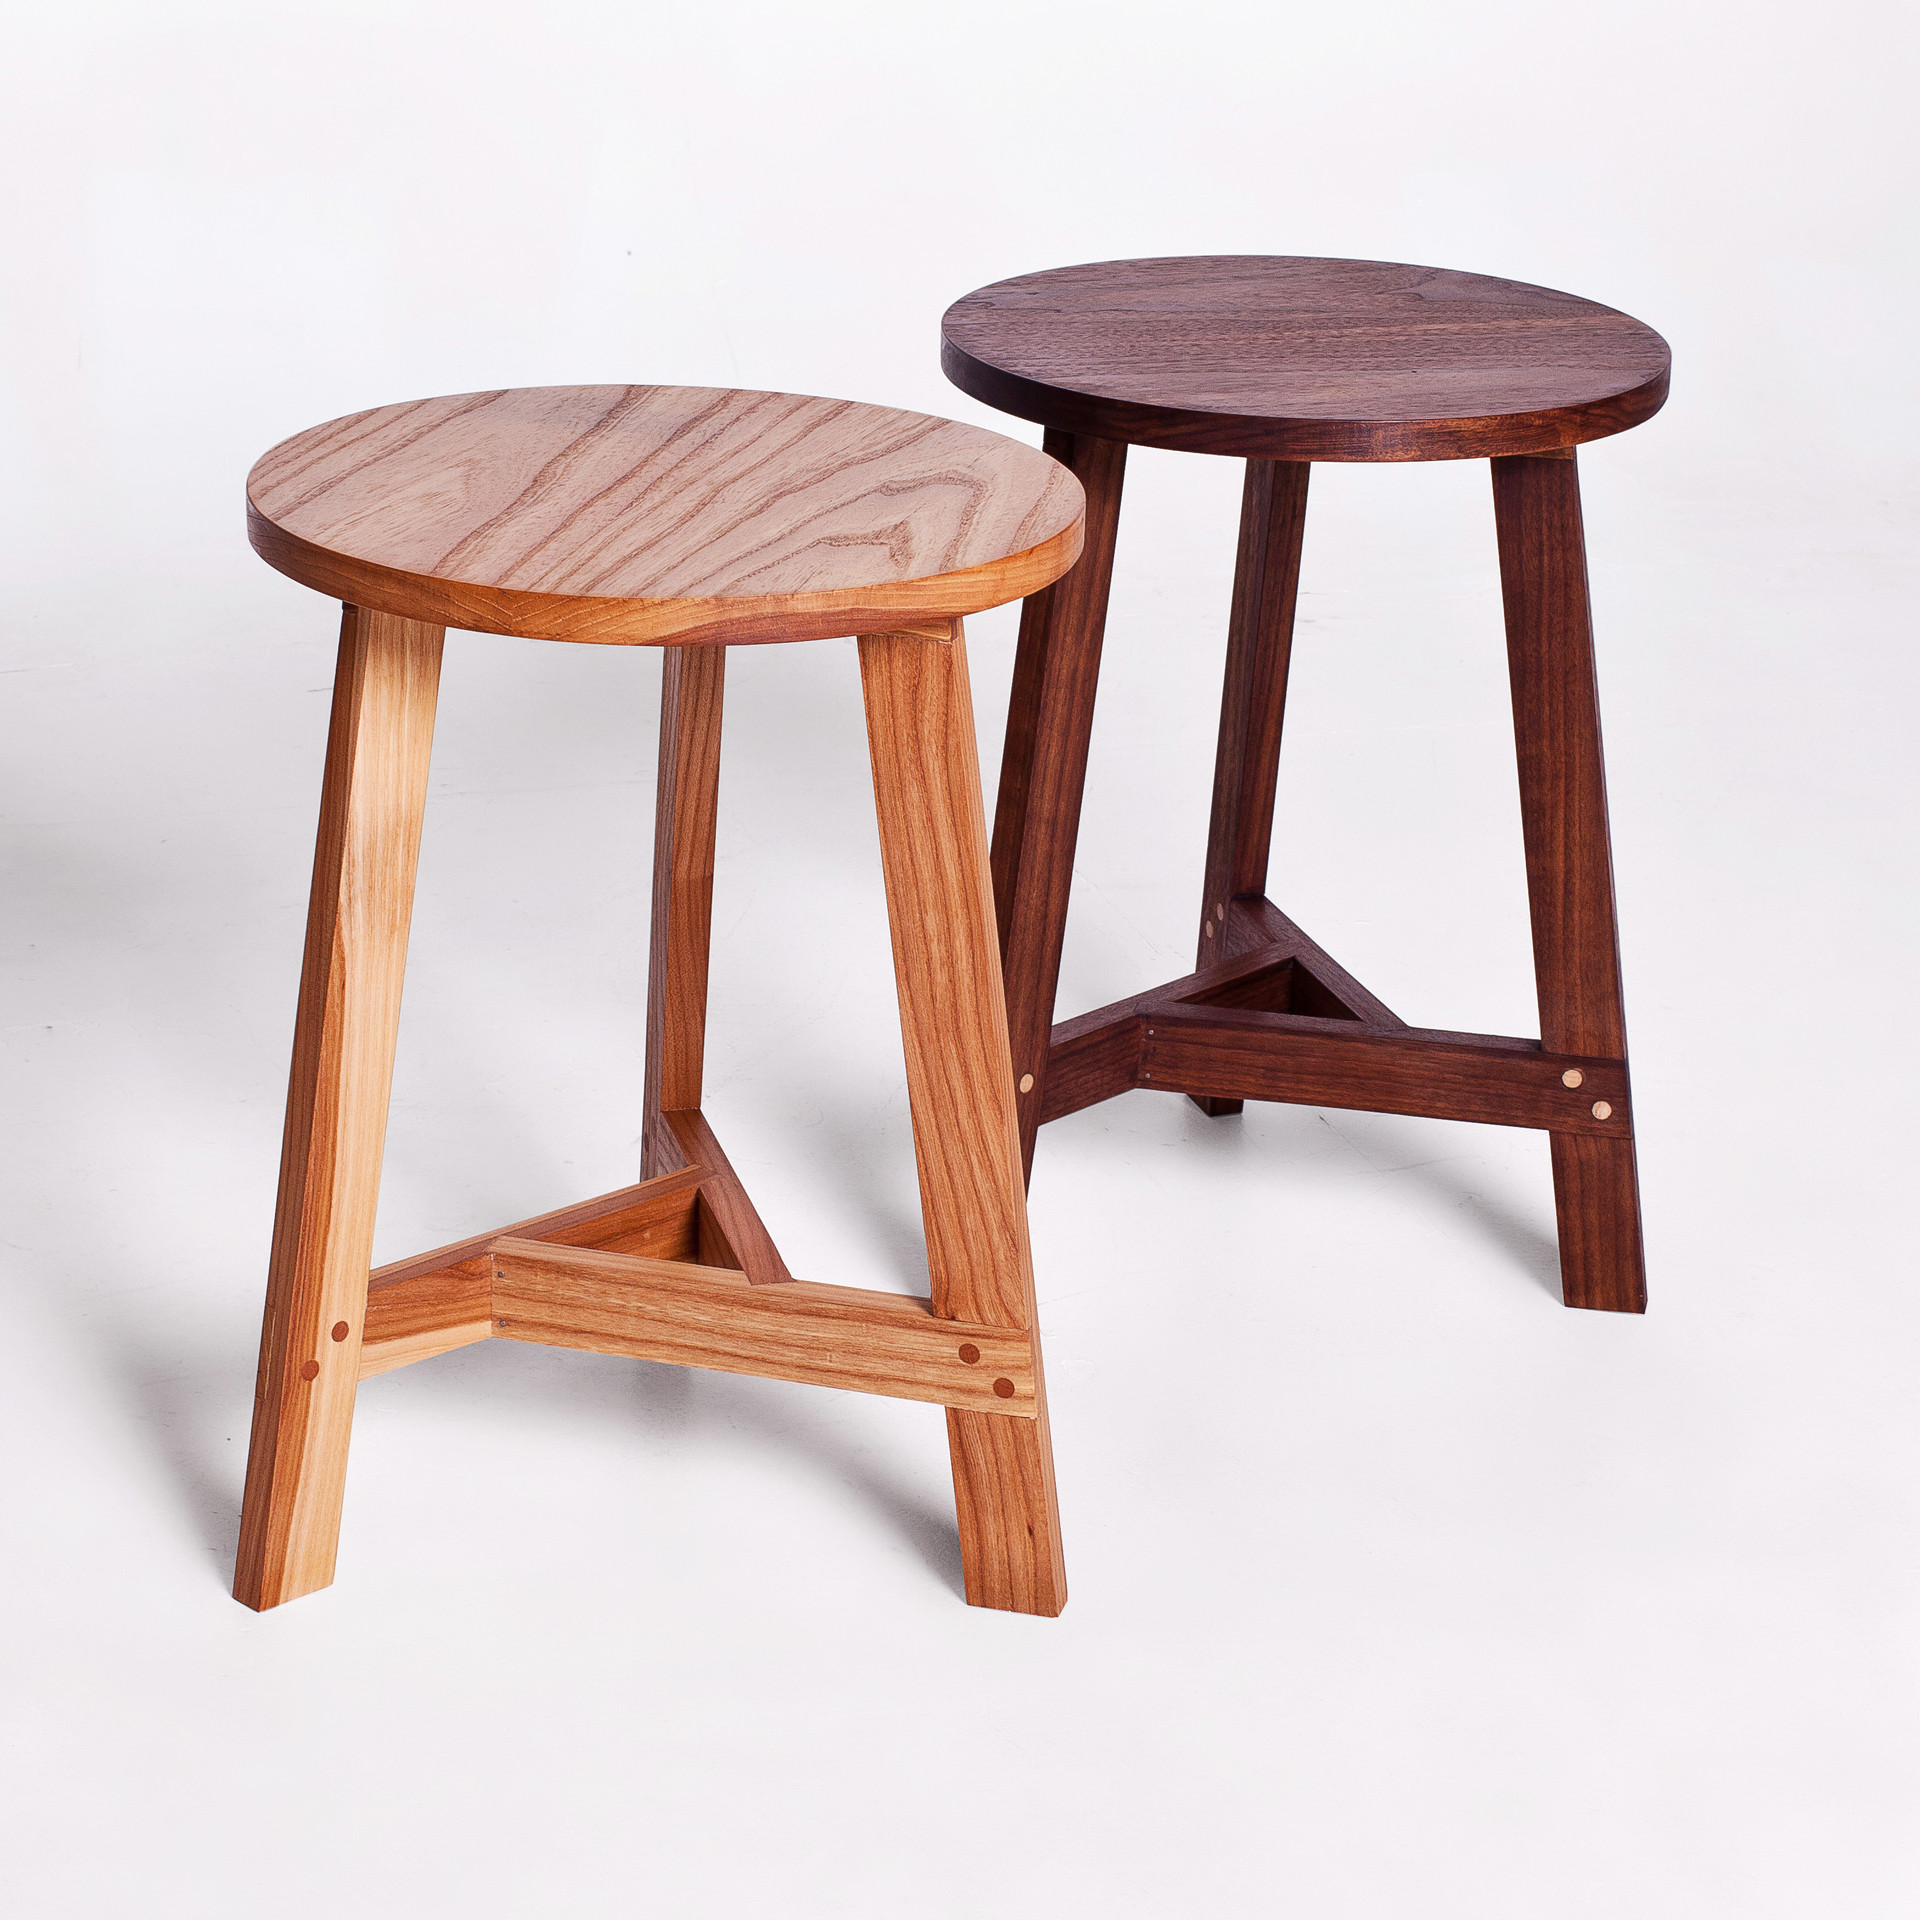 Tripos Stool / Side Table